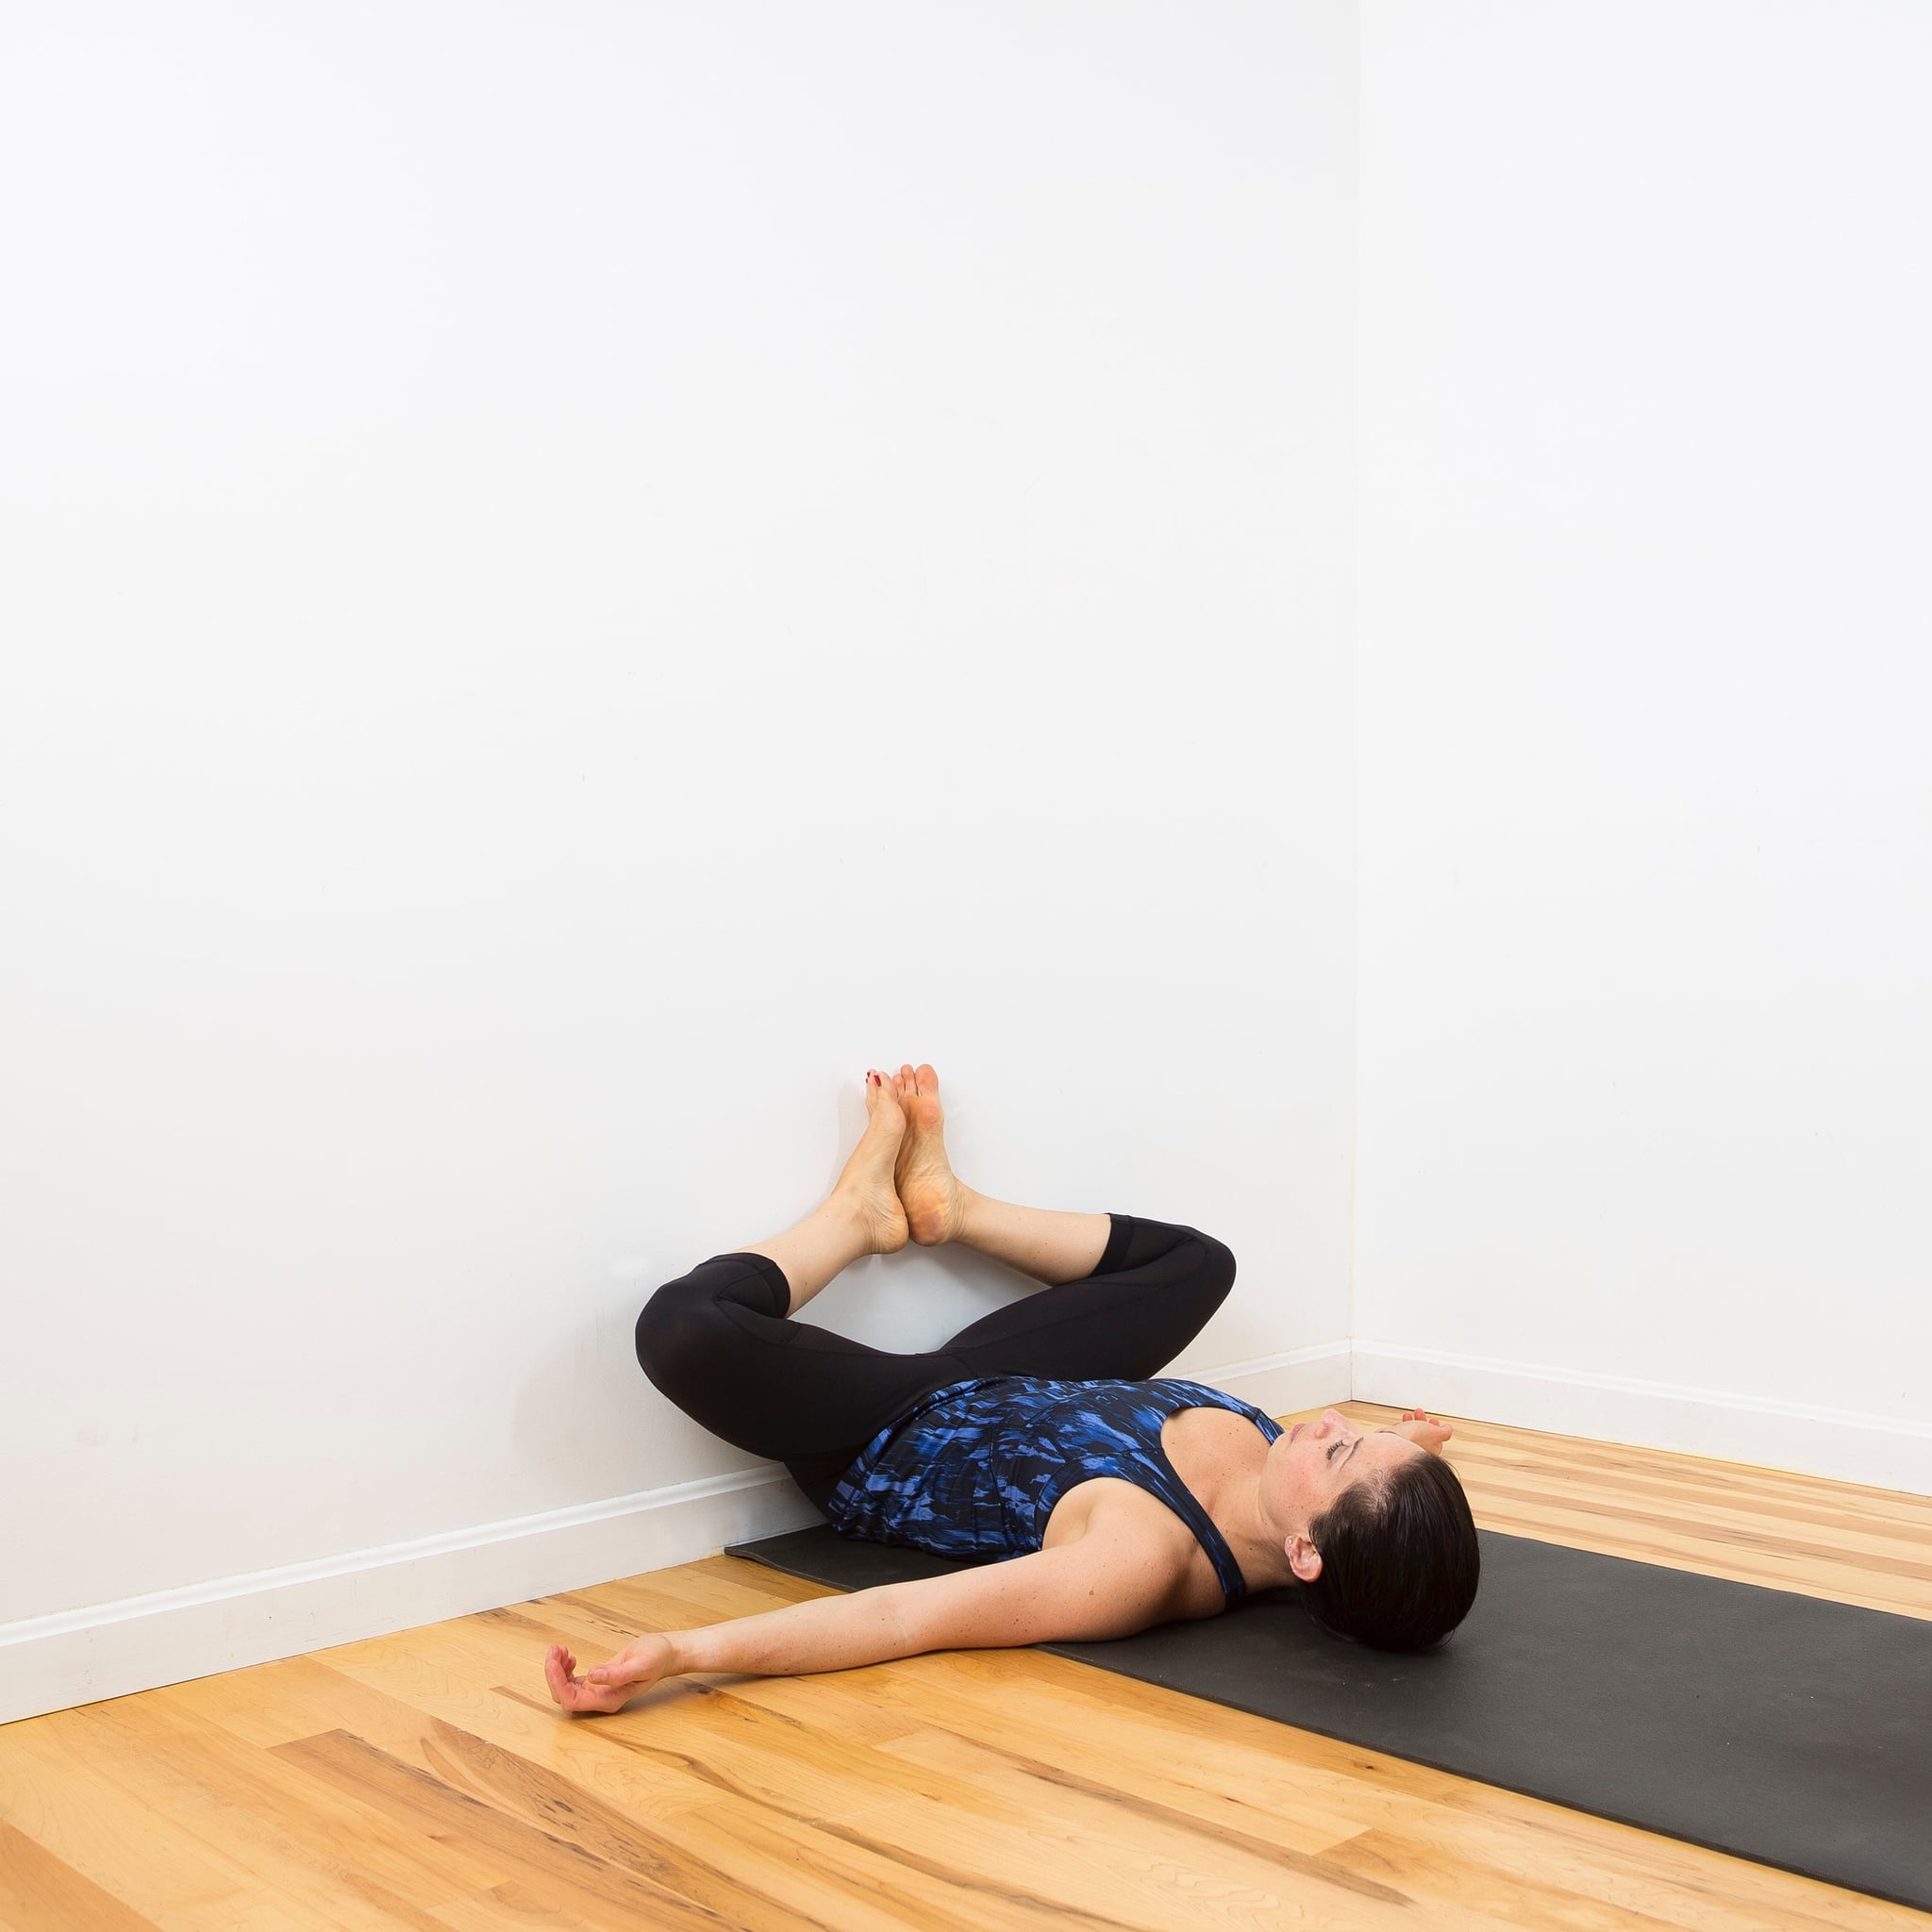 Do This Hip Opener Against the Wall, and You'll Never Do It on the Floor Again